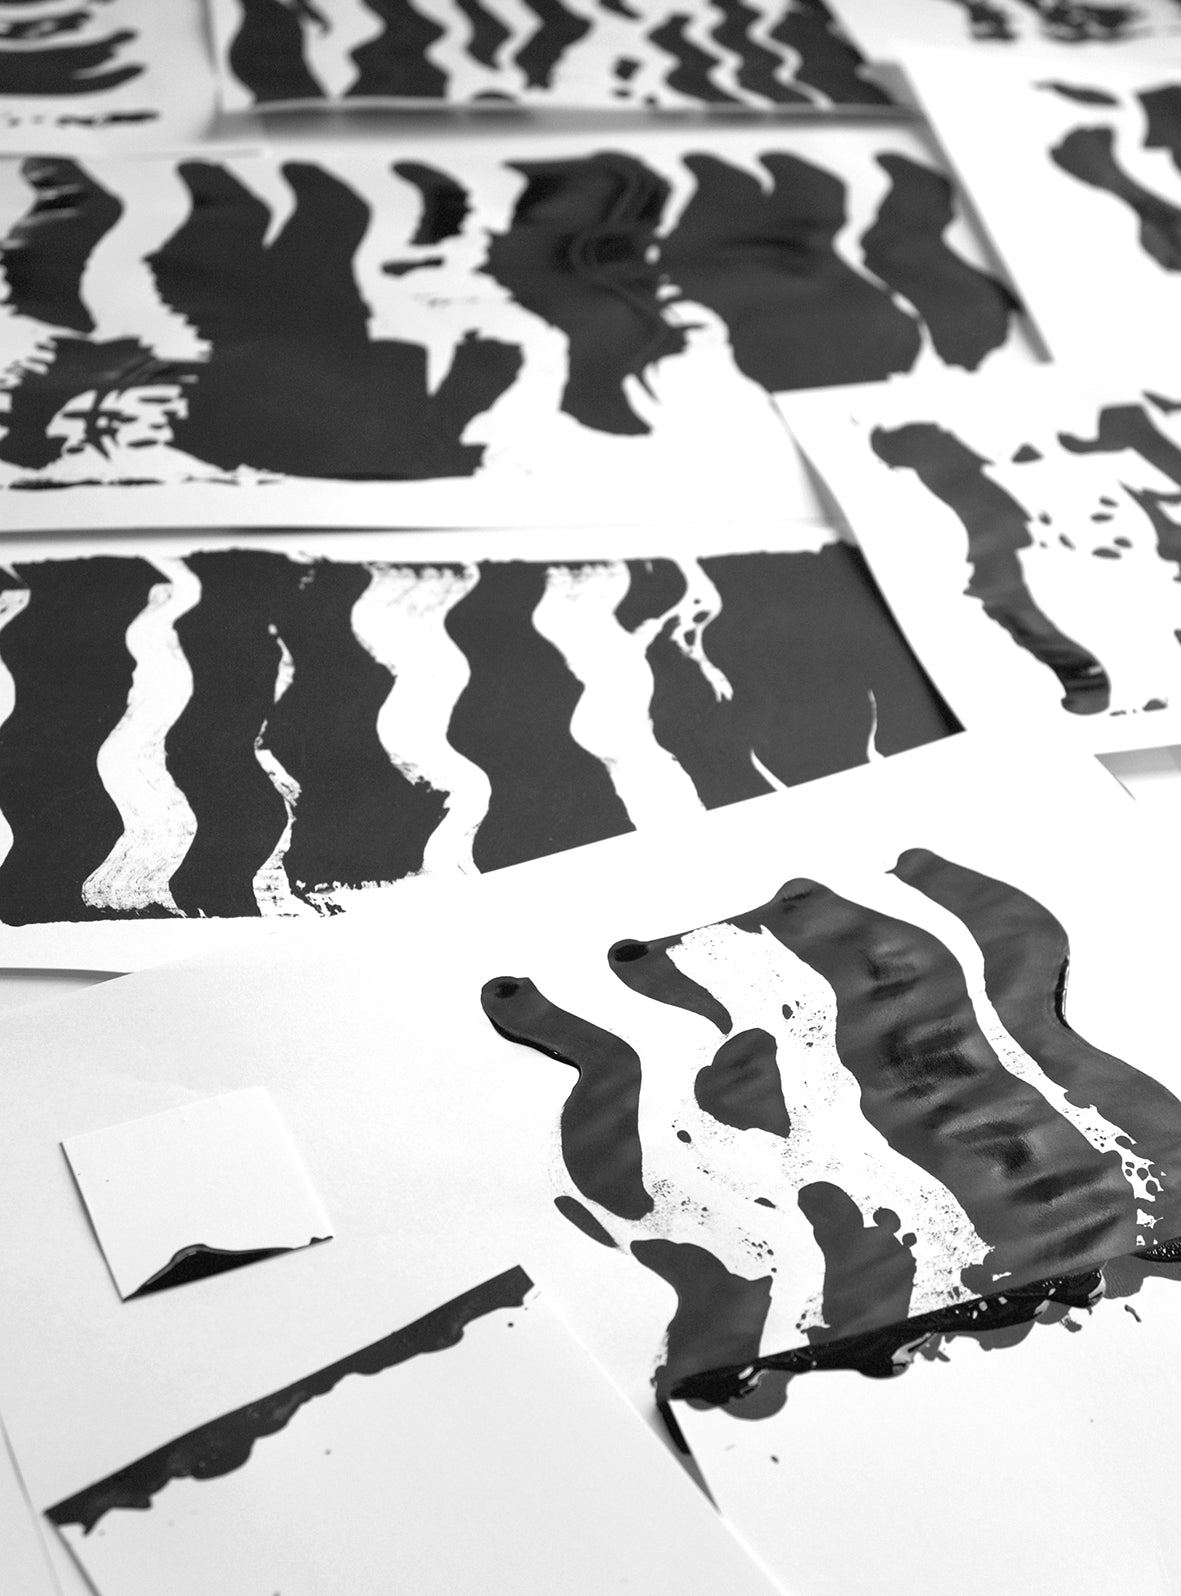 Black and white abstract pattern on a paper